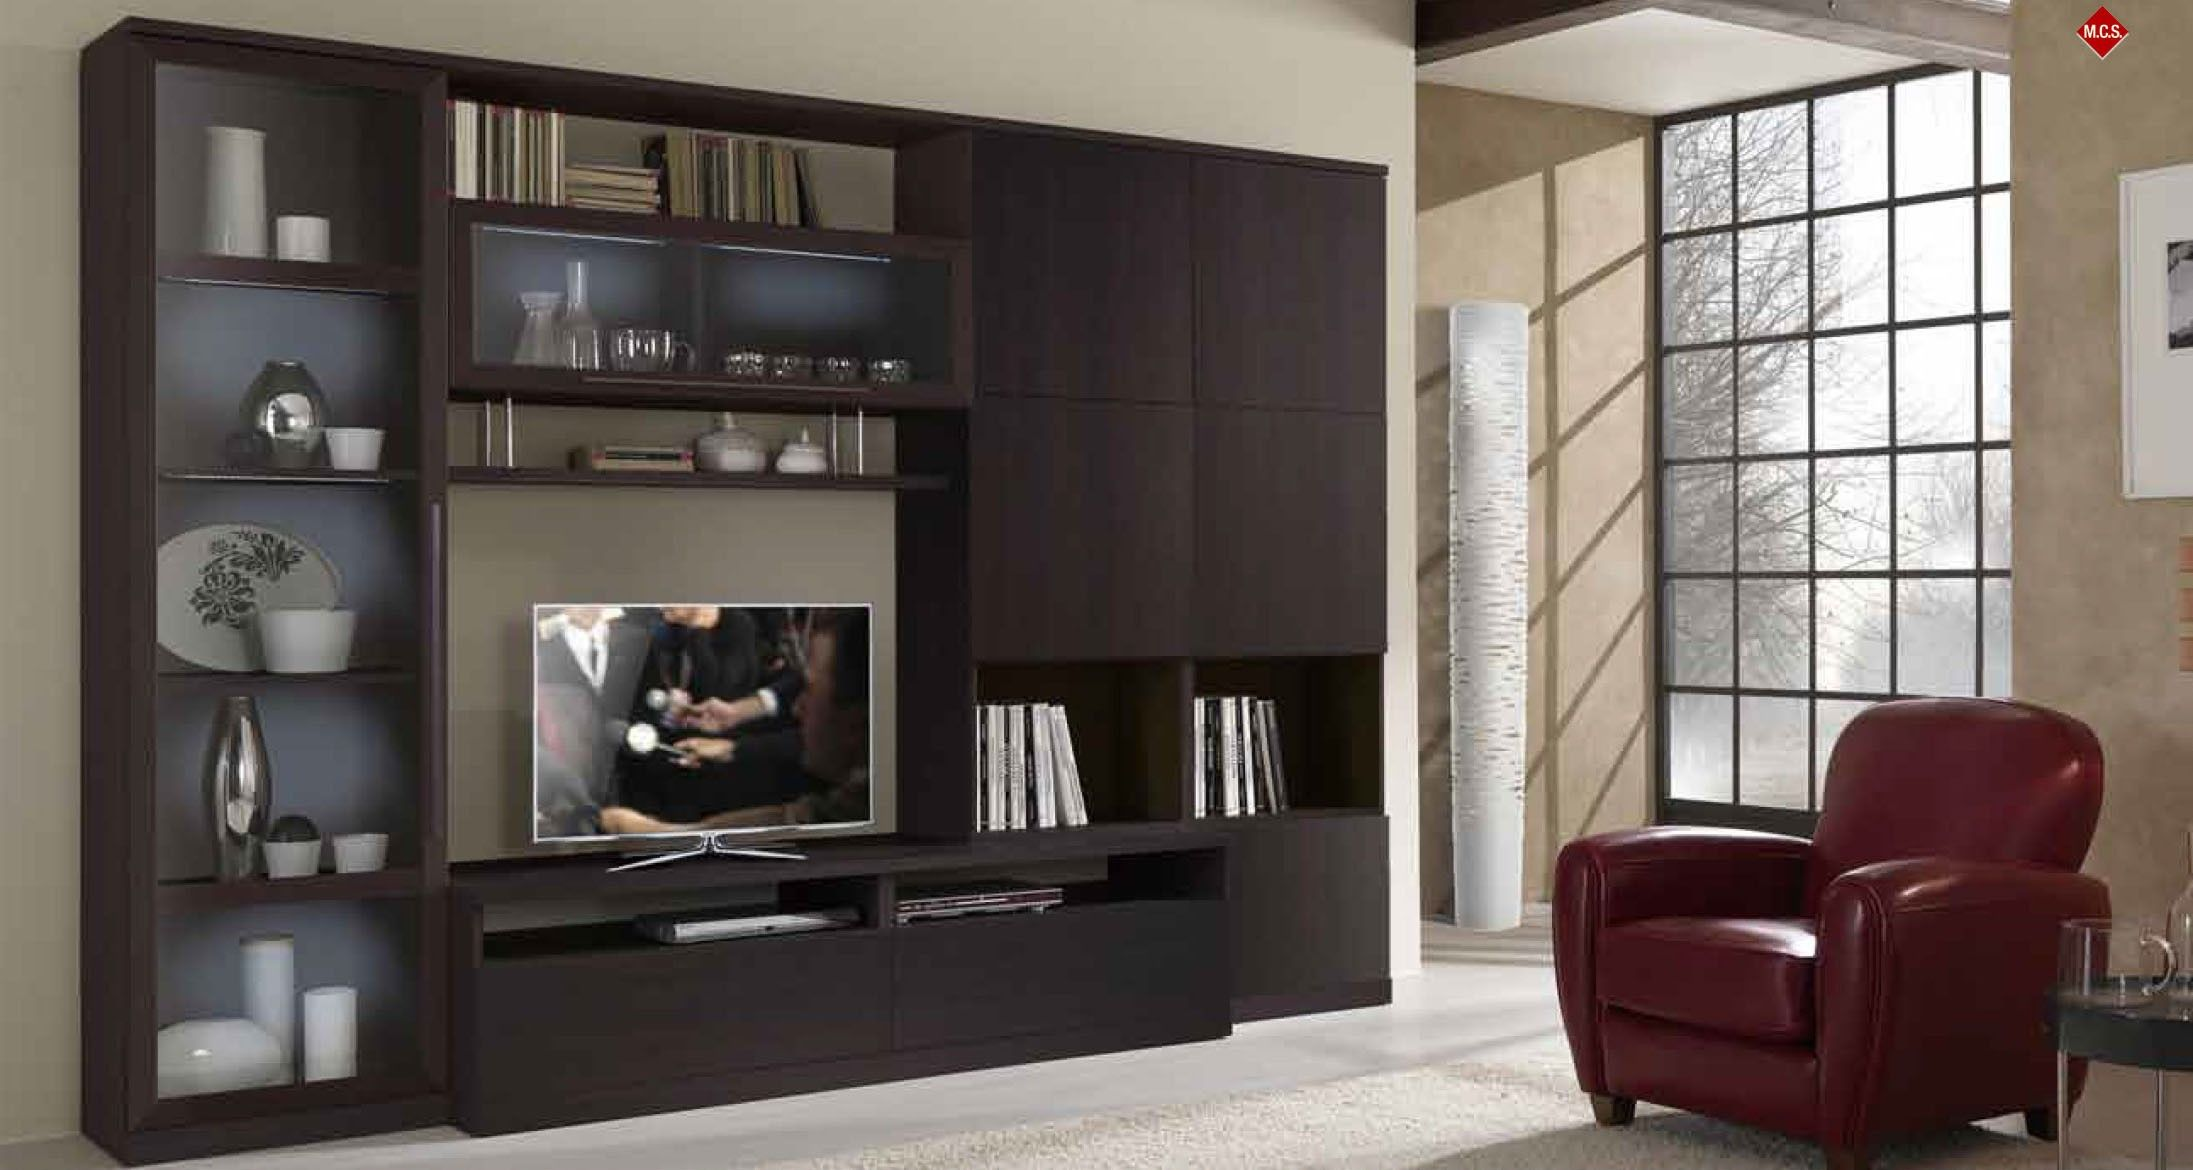 Home Built In Bar And Wall Unit Ideas Magnificent Living Room Modern Showcase Designs For